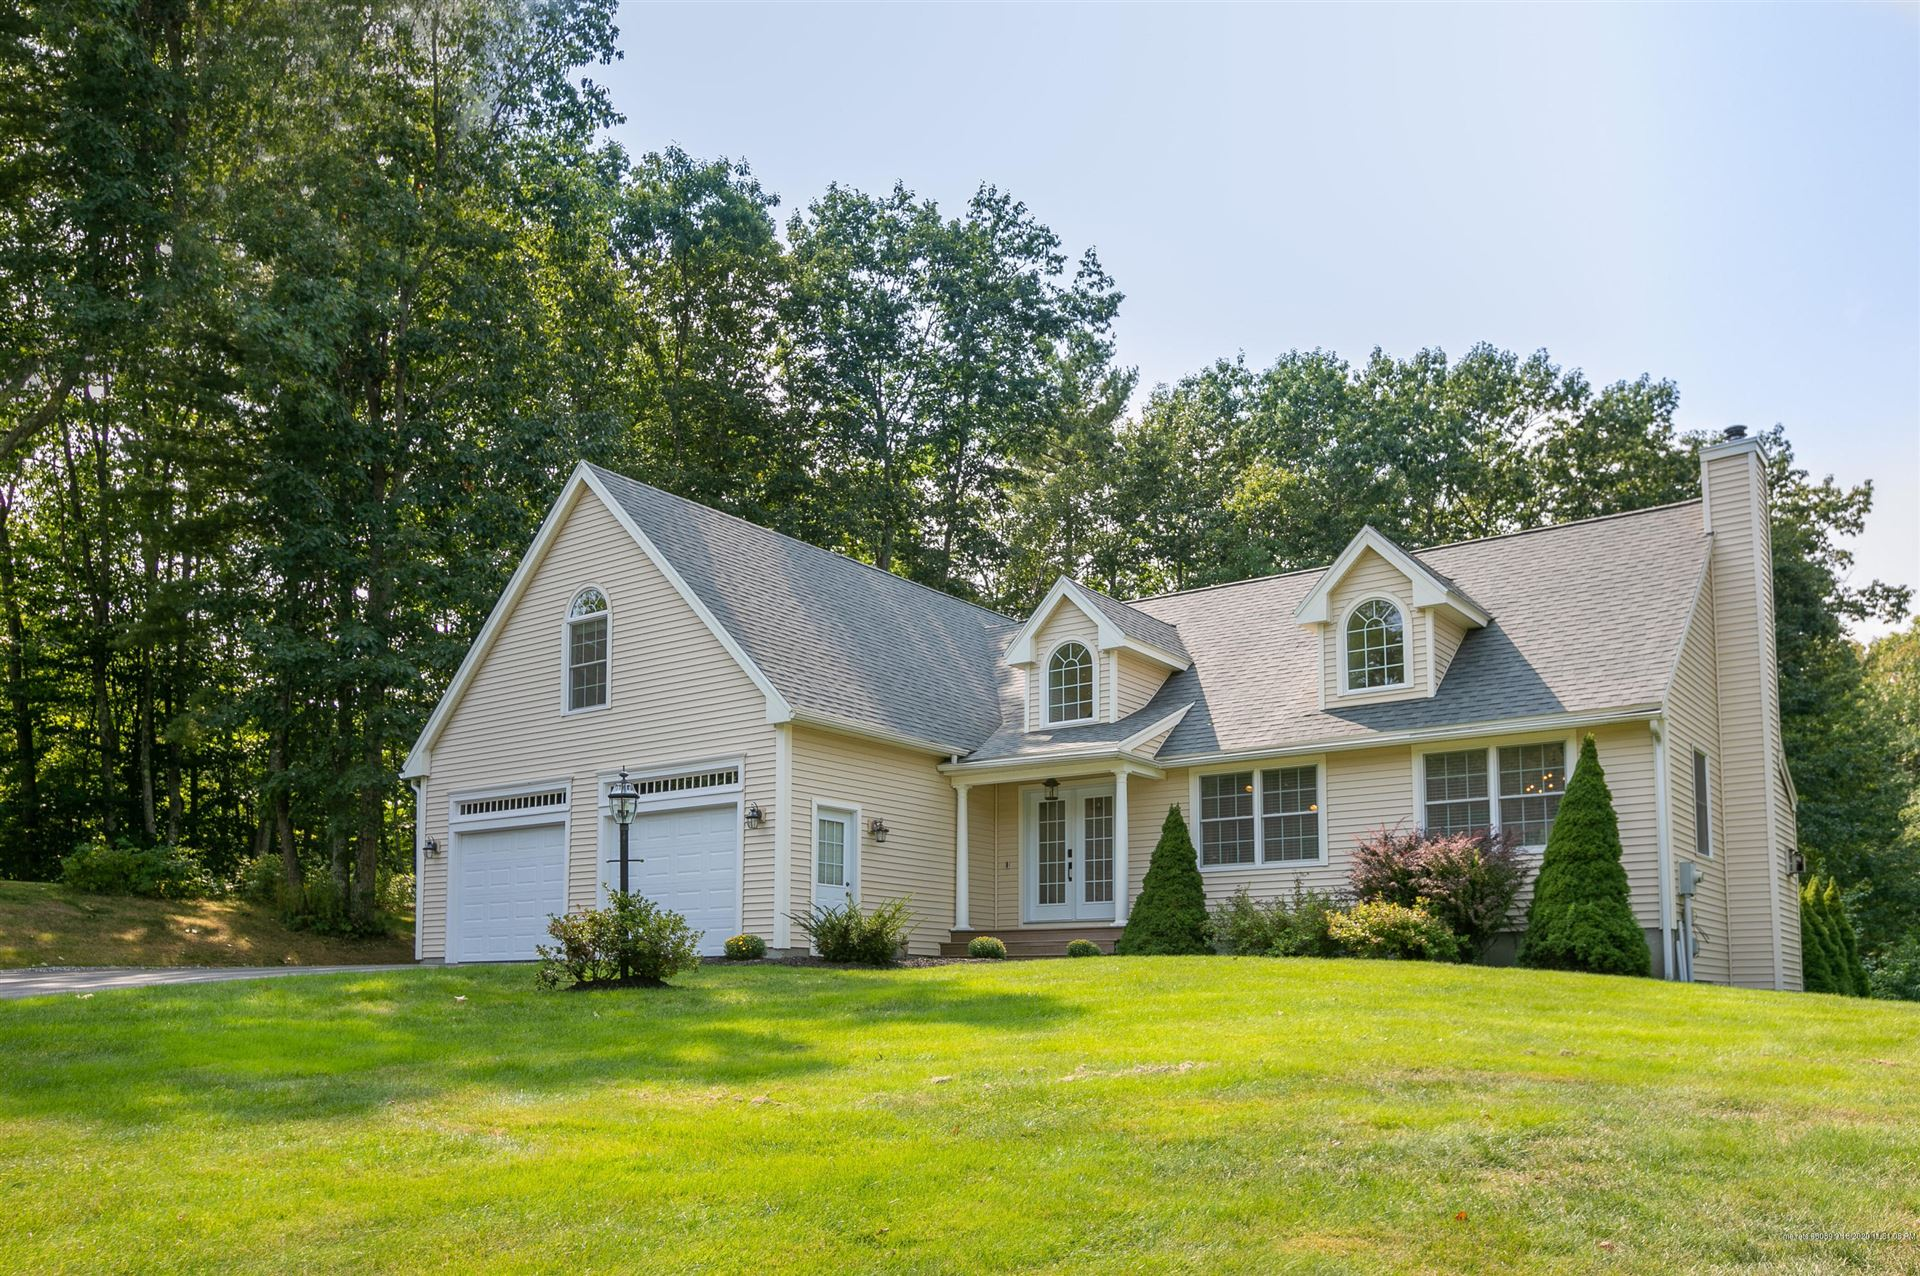 Photo of 18 Woodspell Road, Scarborough, ME 04074 (MLS # 1469464)